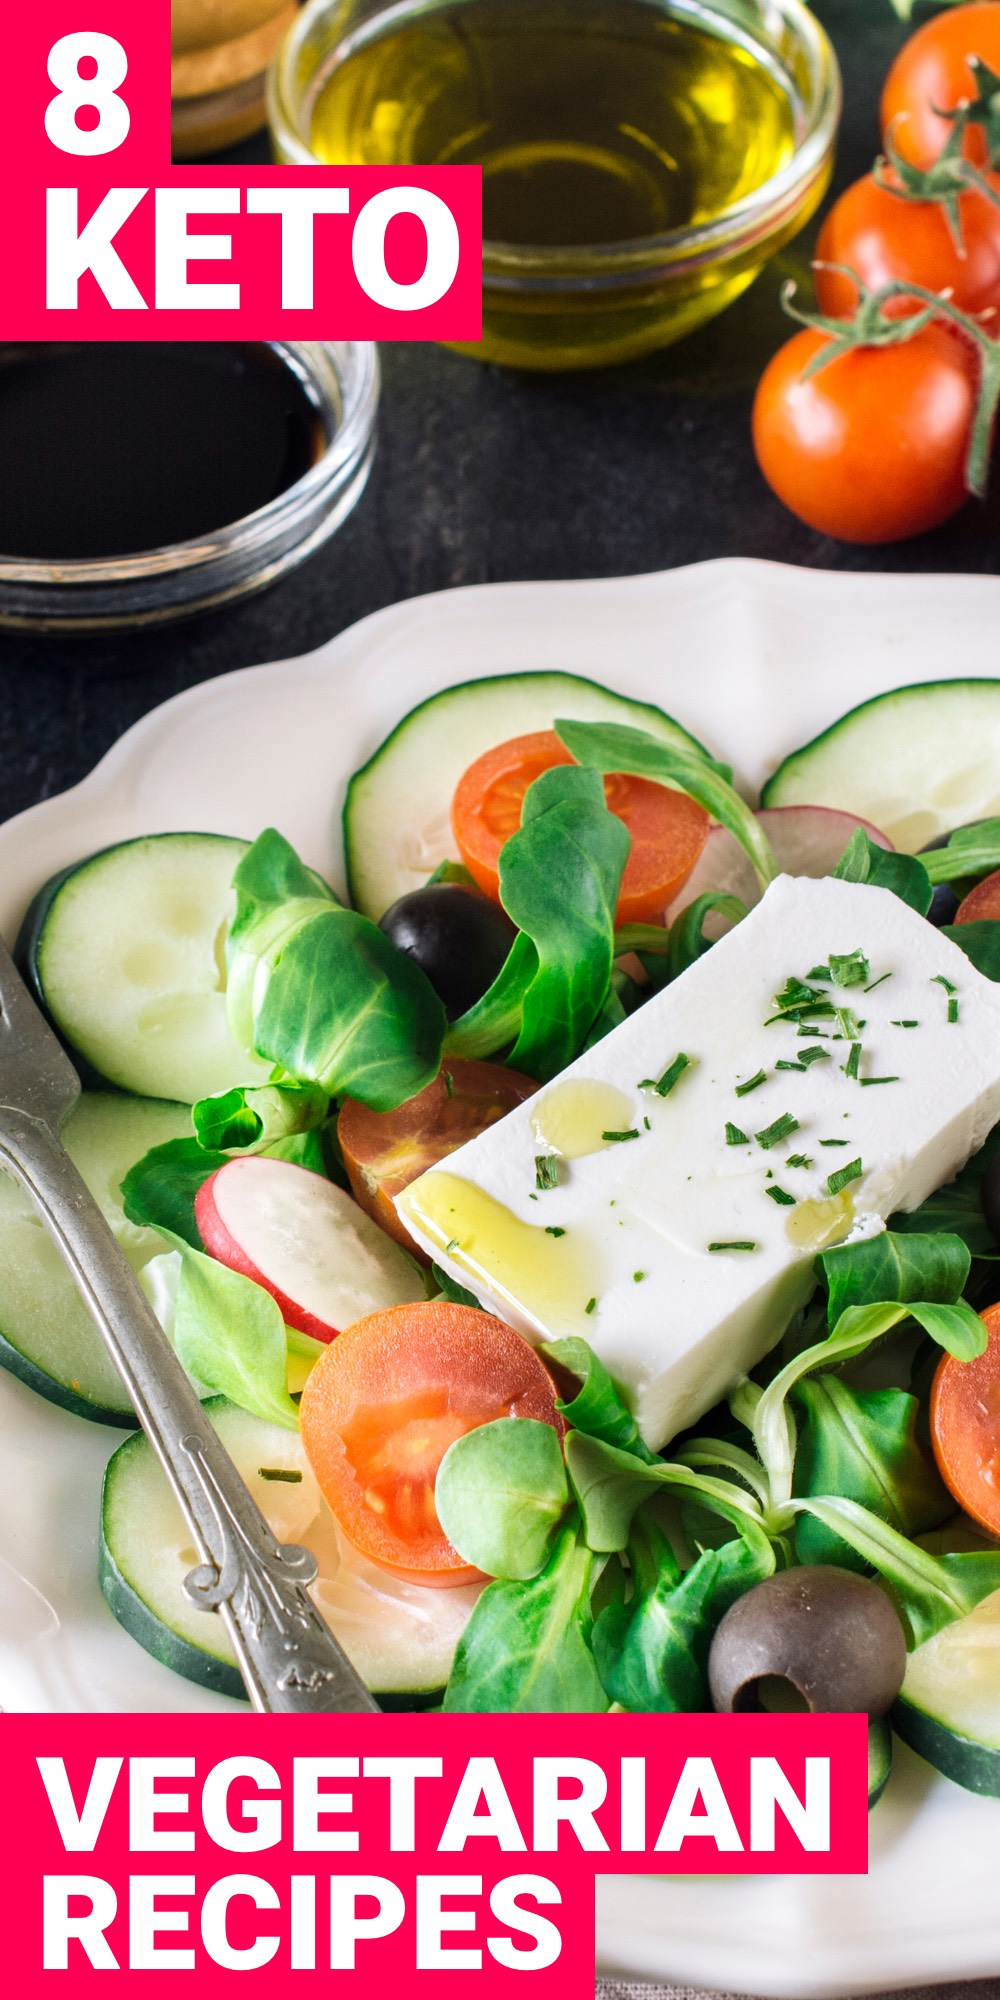 Being a vegetarian and on the ketogenic diet may not be a very ideal situation but it's easily possible. Here are 8 keto vegetarian meals that will help you reach ketosis.